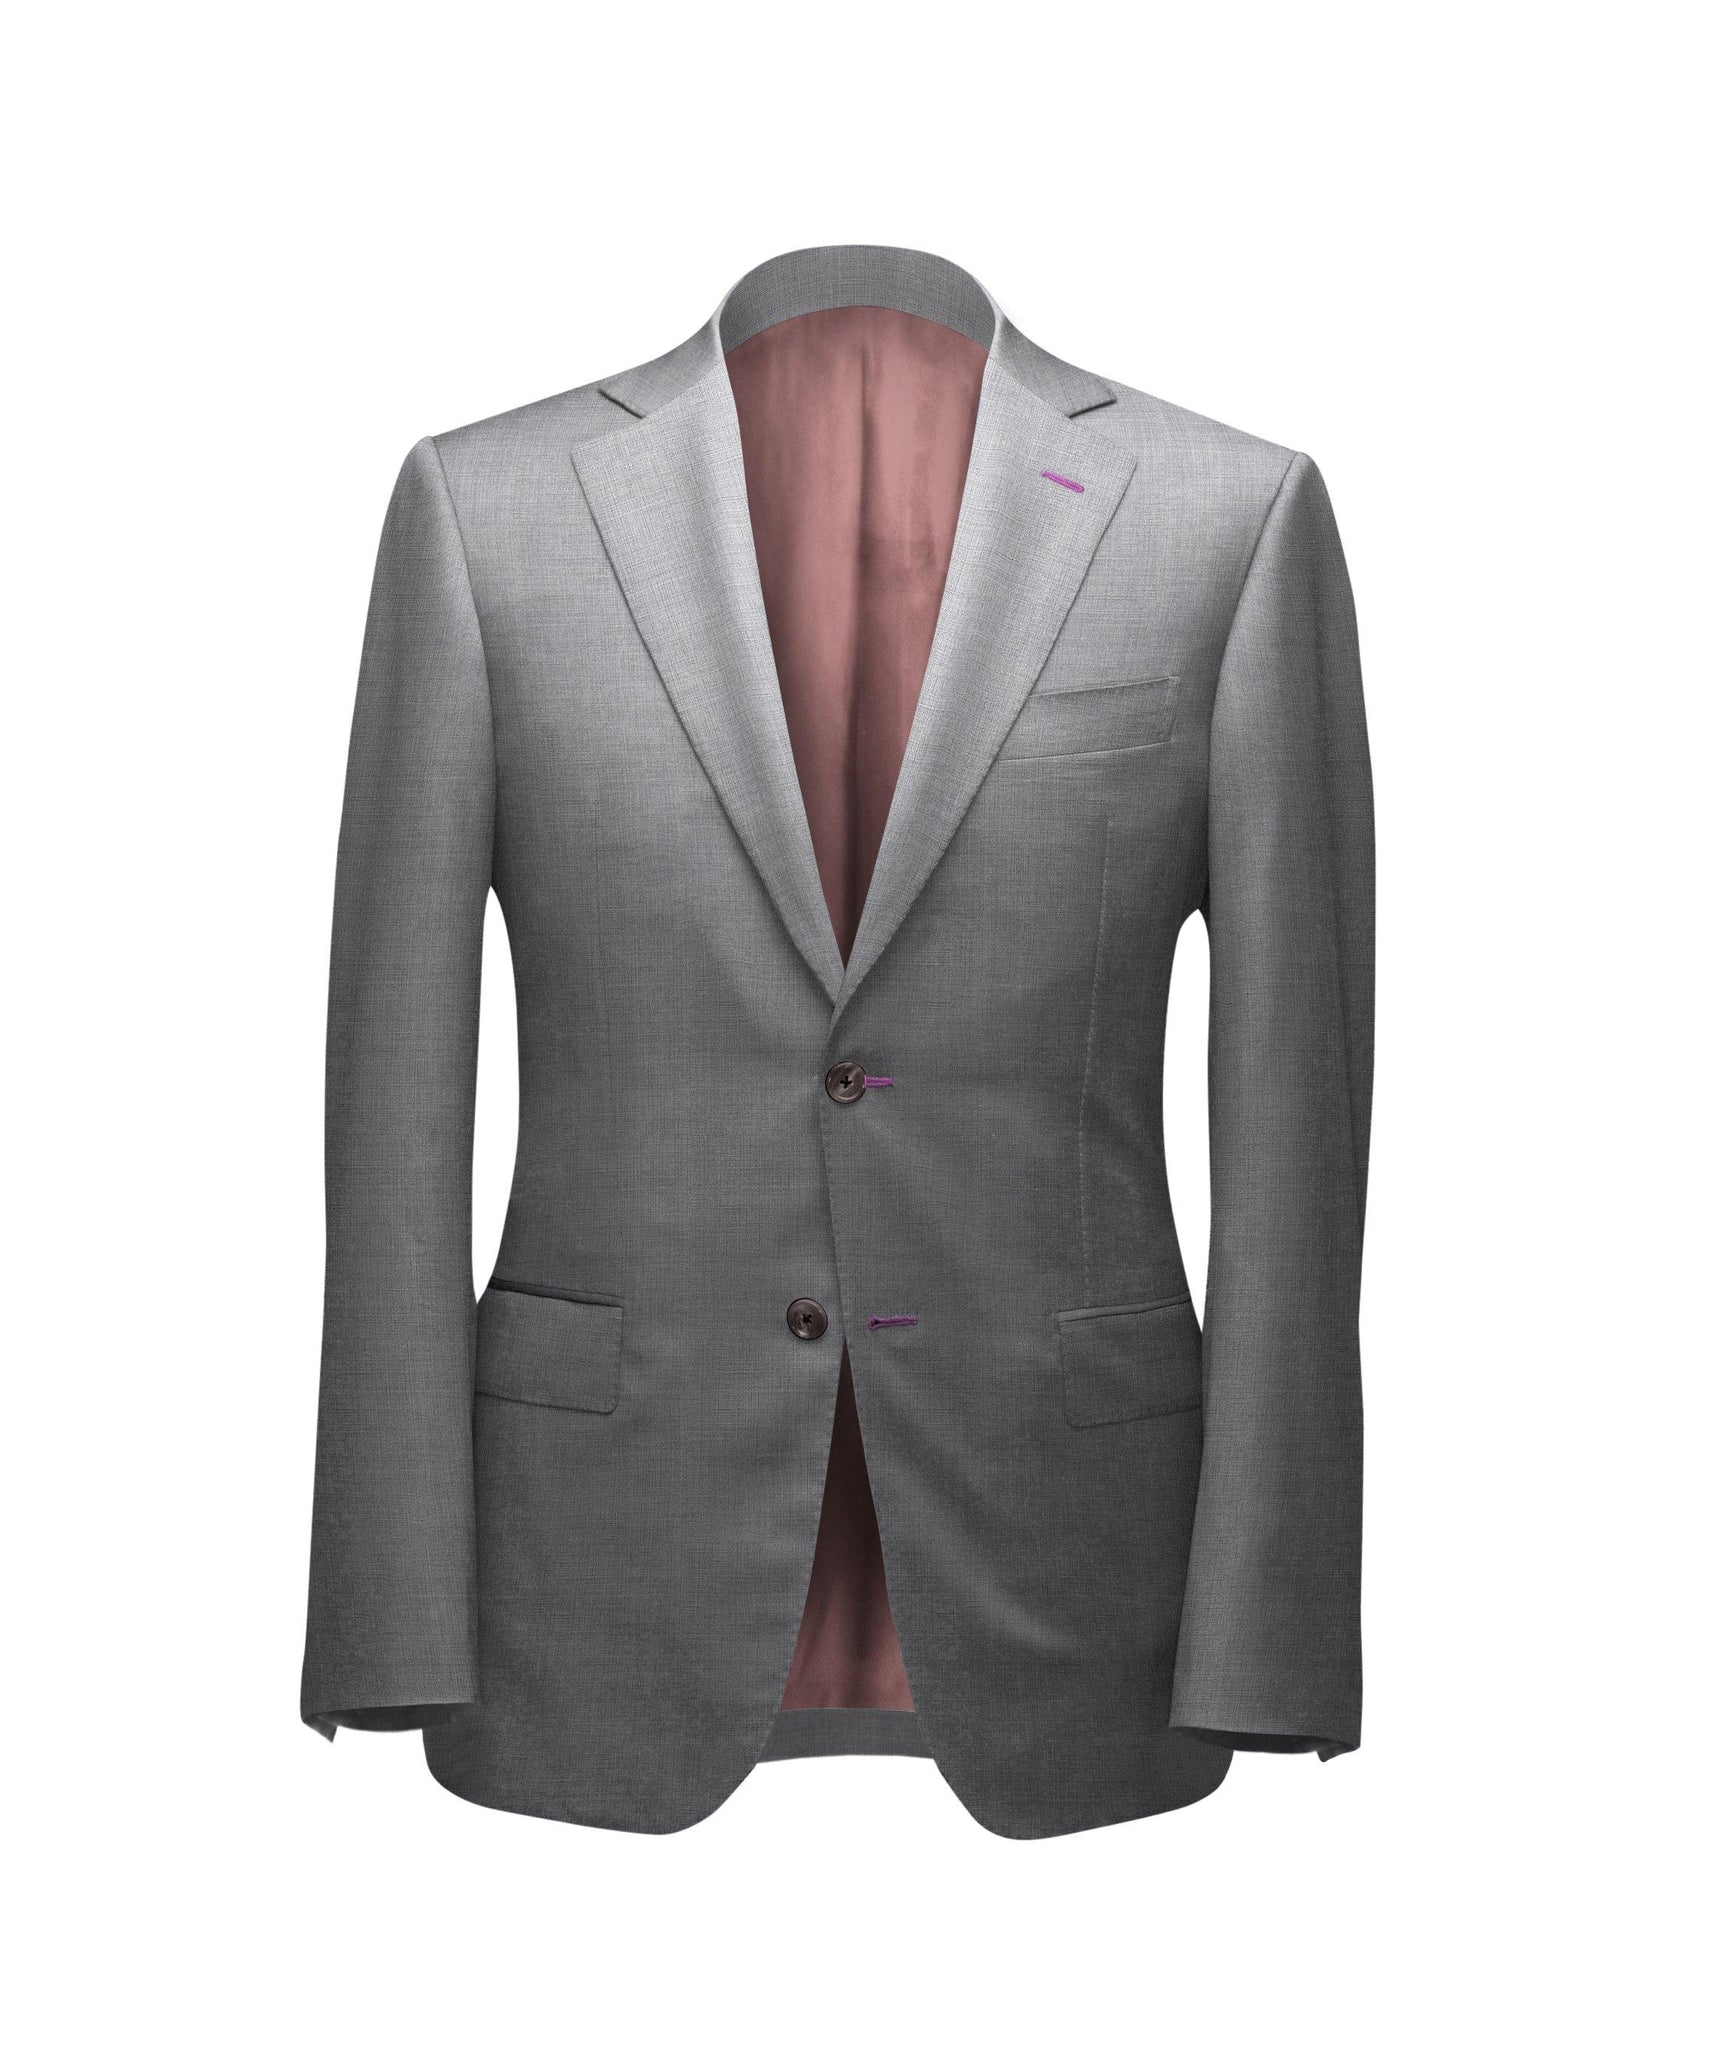 The Dapper Range 2 Piece Suit